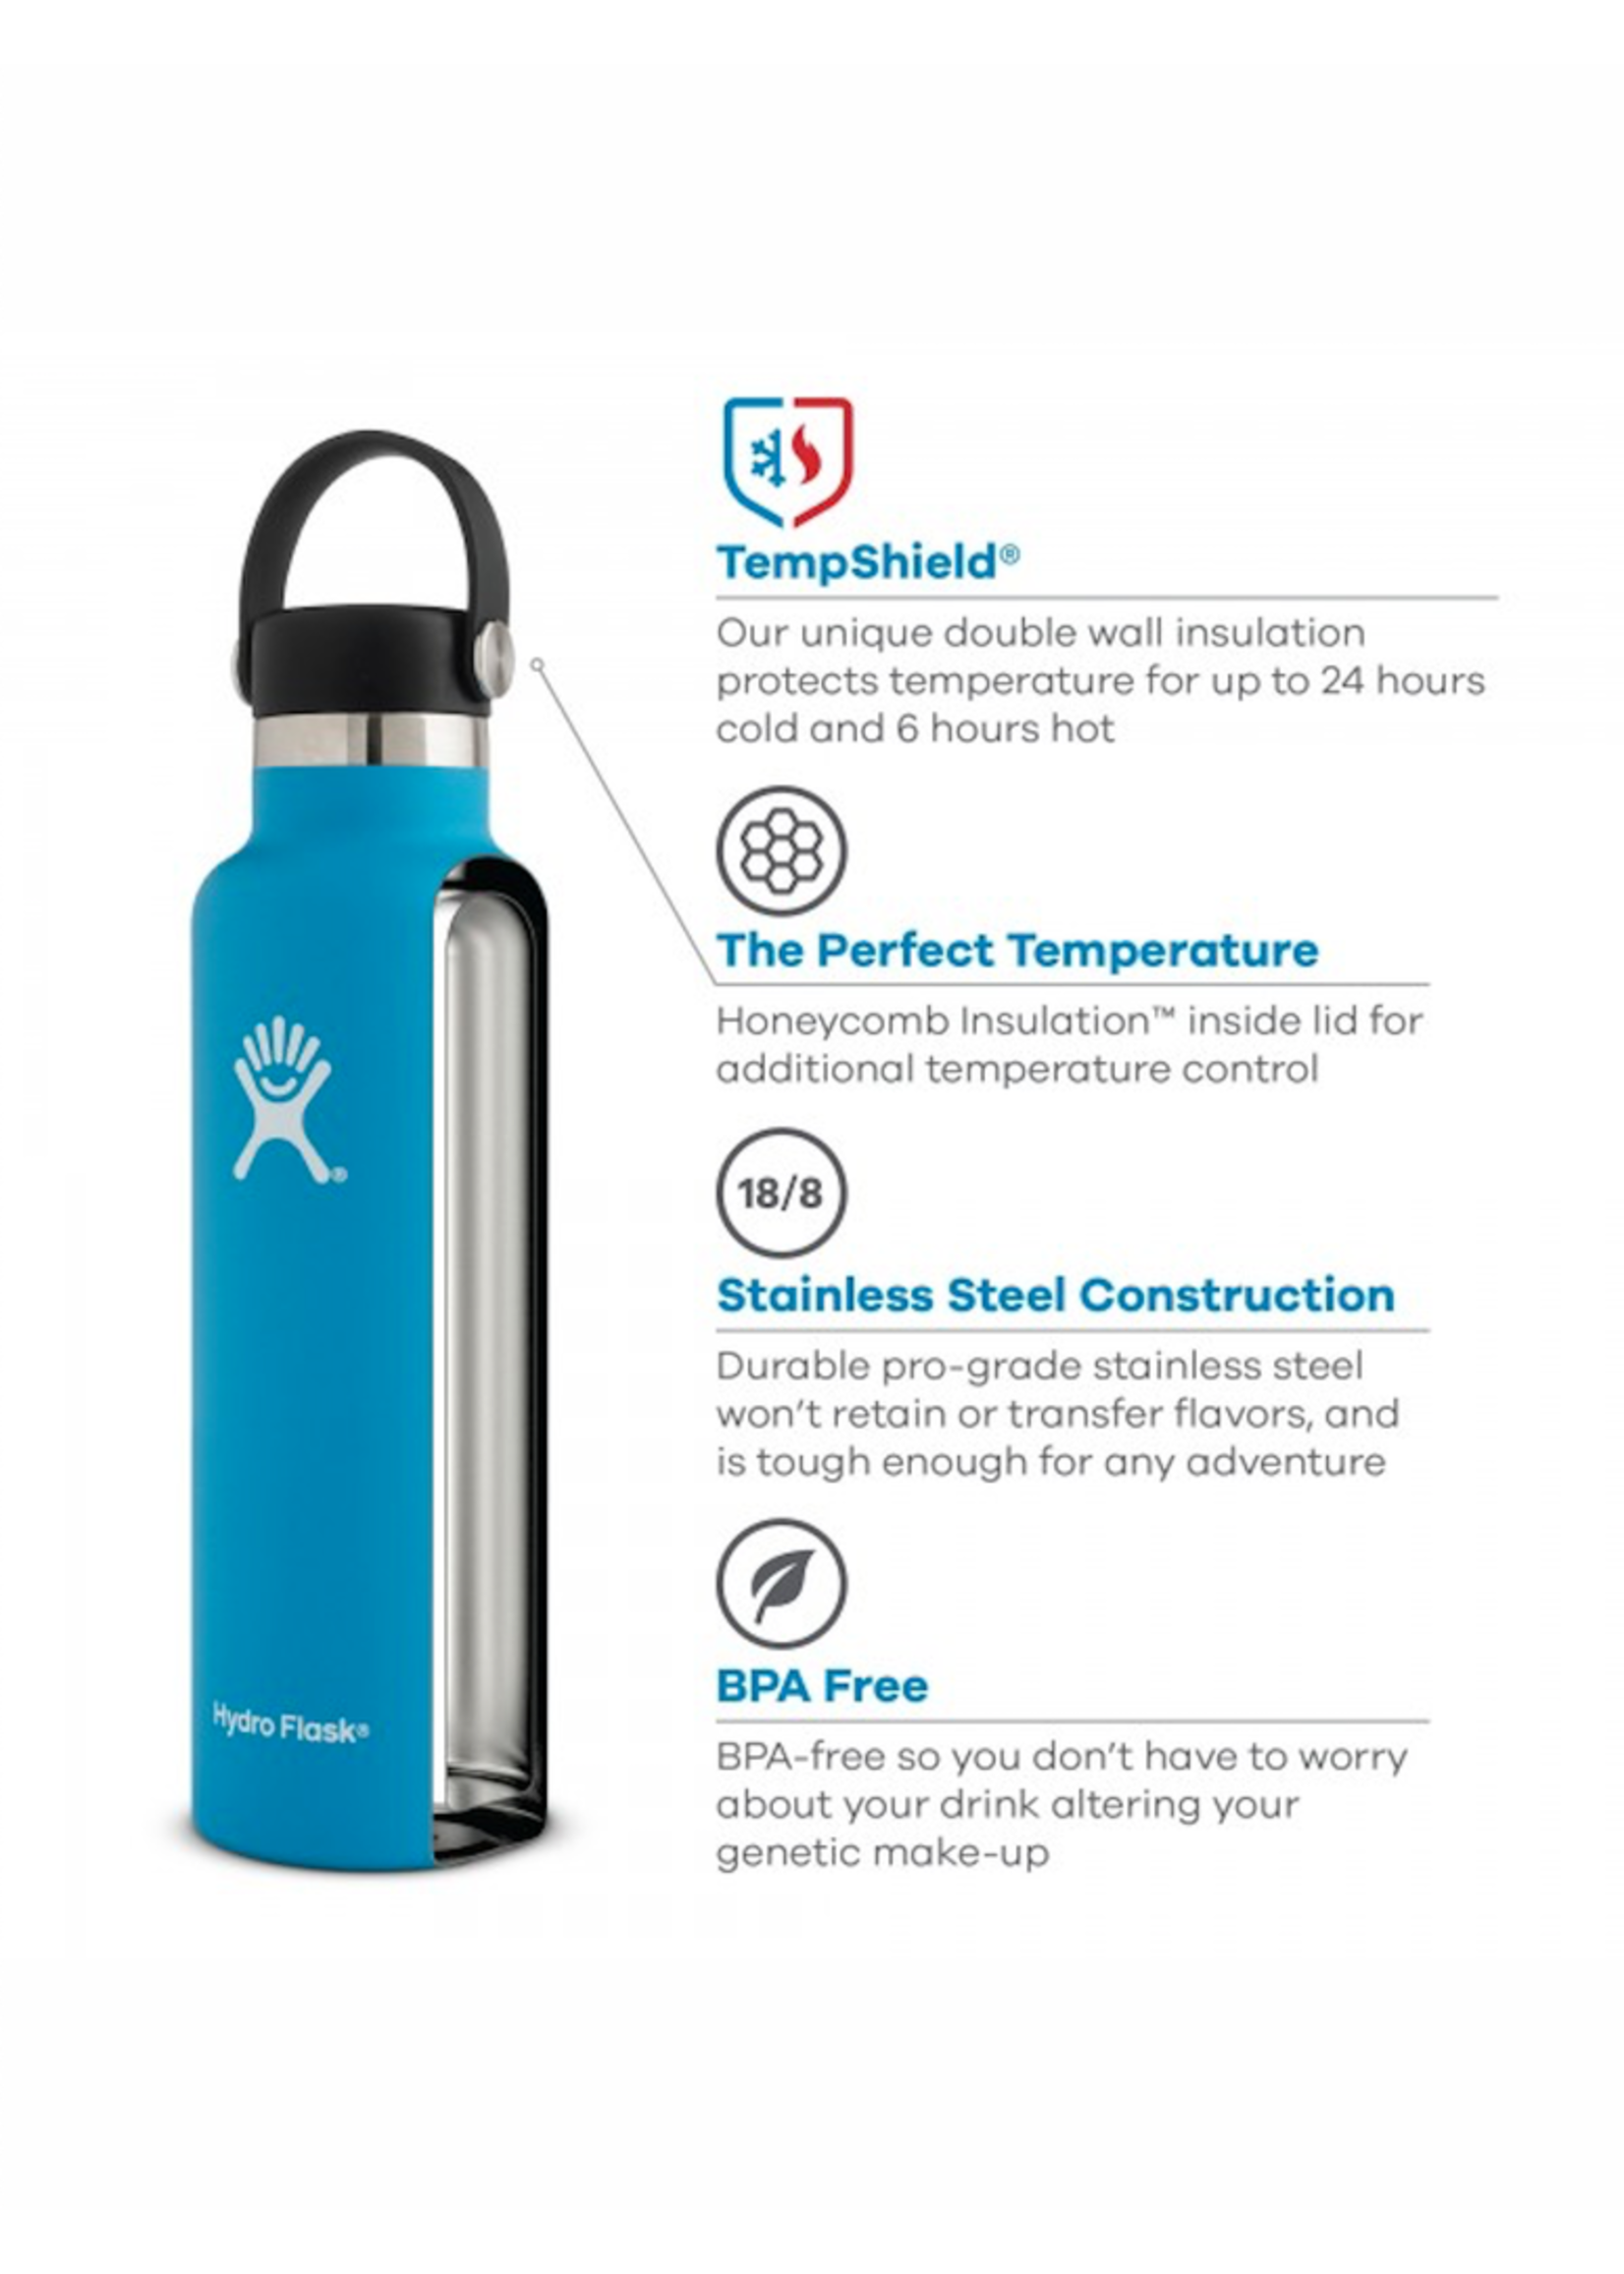 Hydro Flask Hydro Flask, 21 oz Standard Mouth Flex Cap Insulated Stainless Steel Bottle in Cobalt